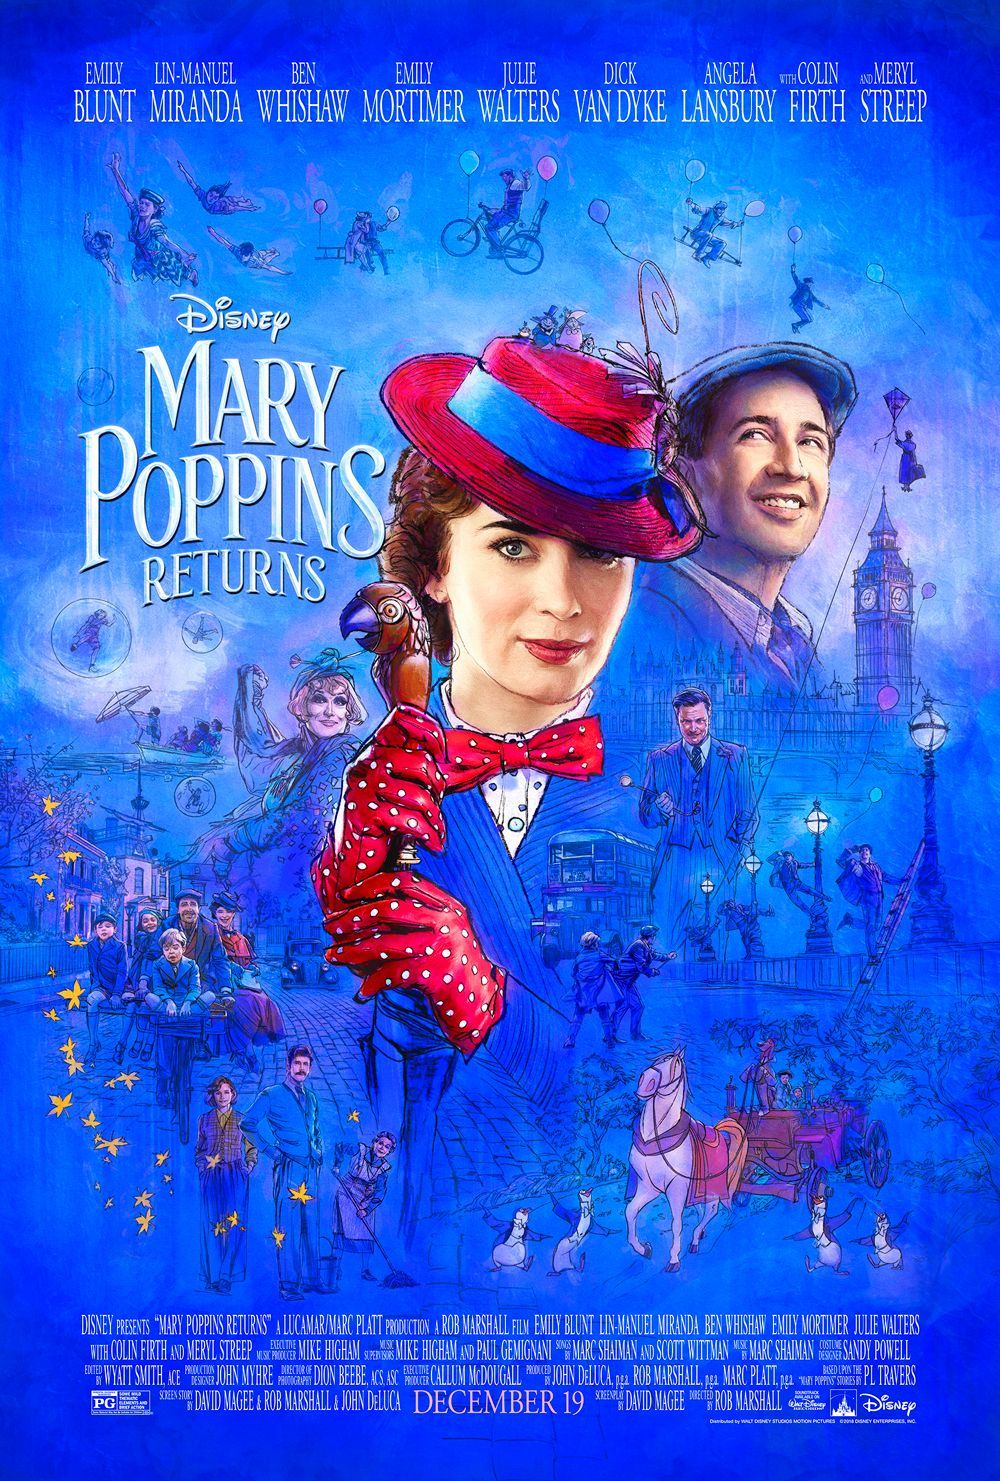 MARY POPPINS RETURNS starring Emily Blunt | In theaters December 19, 2018